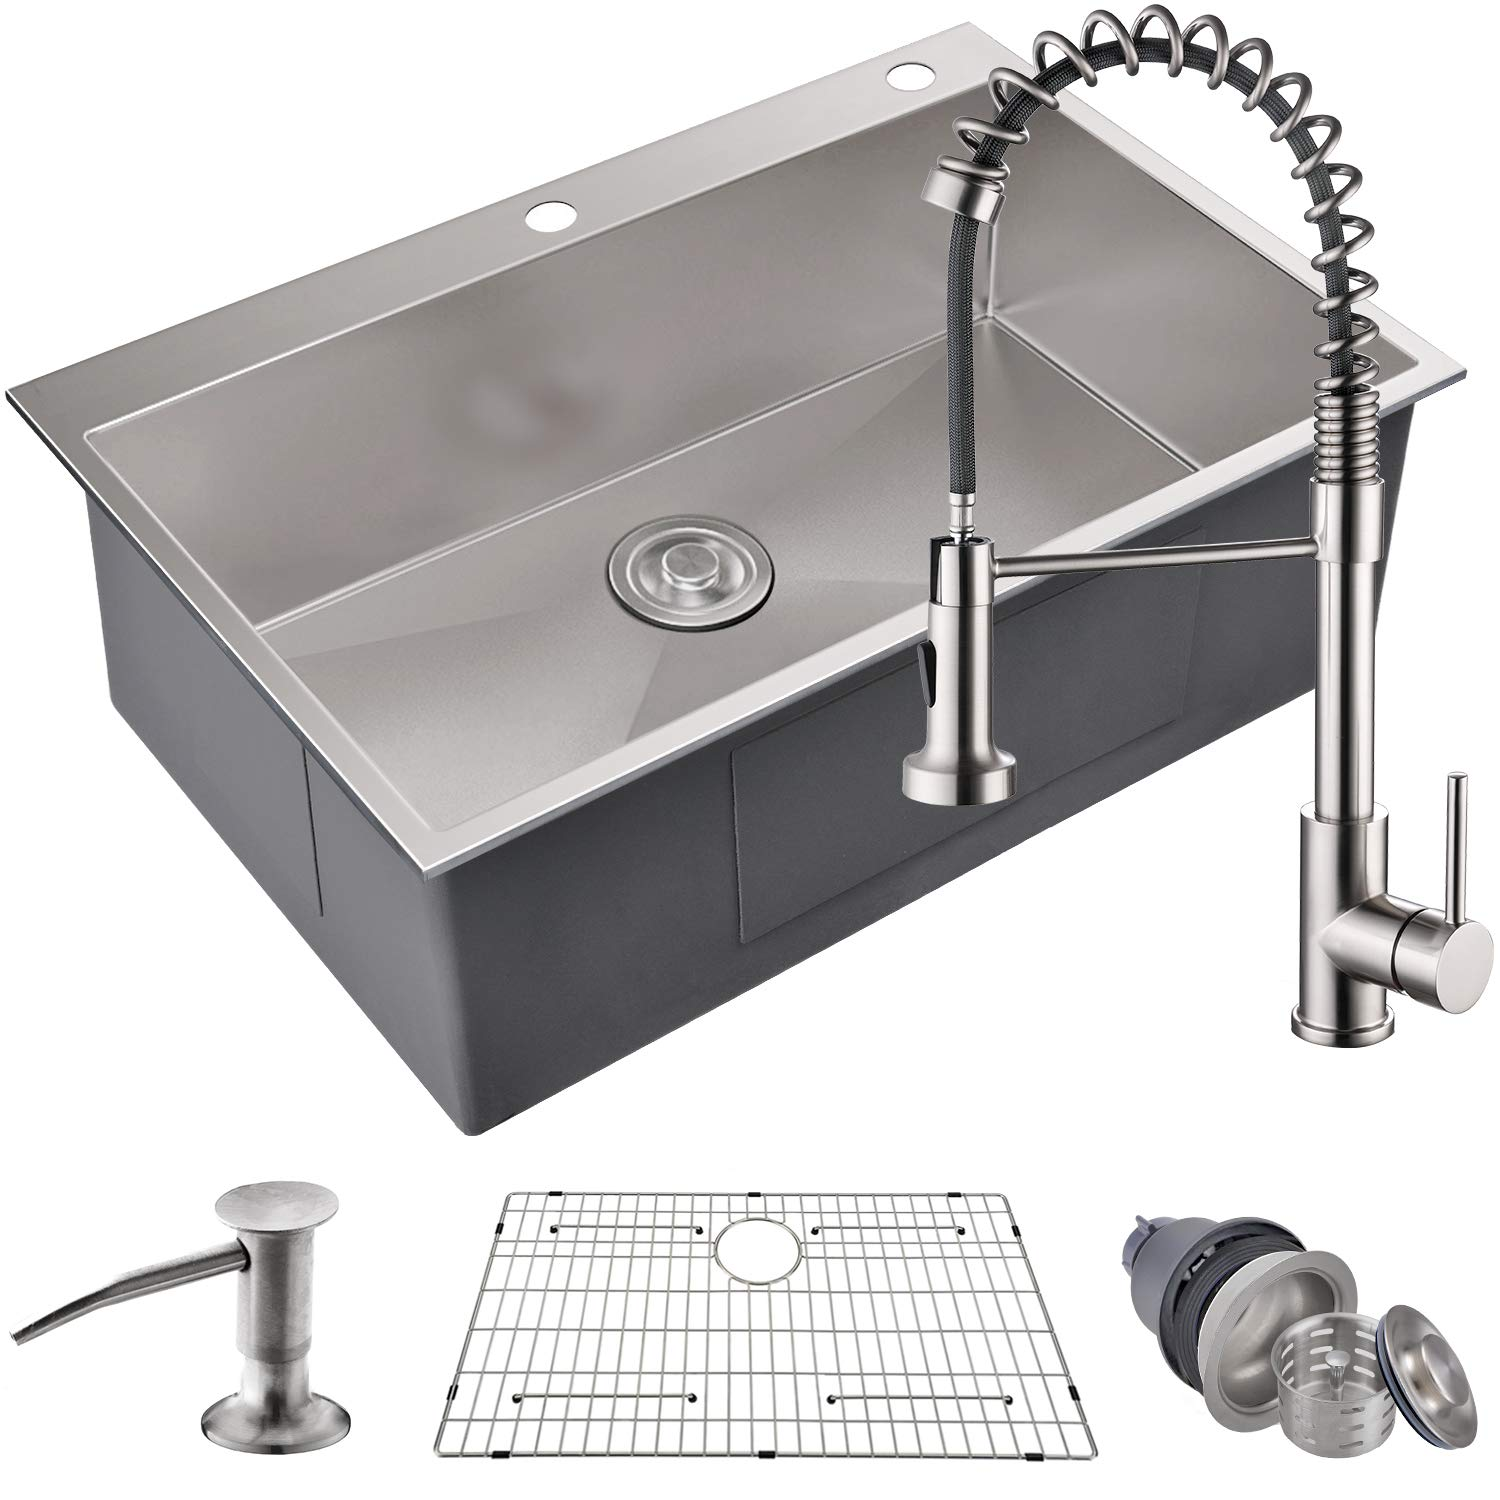 "MOWA HTS3322 Pro Series Handmade 33"" 16 Gauge Stainless Steel Topmount Drop-in Single Bowl Kitchen Sink & Pull-Down Faucet Combo, Commercial Deep Sink + Spring Faucet, w/Basket Strainer & Sink Grid"